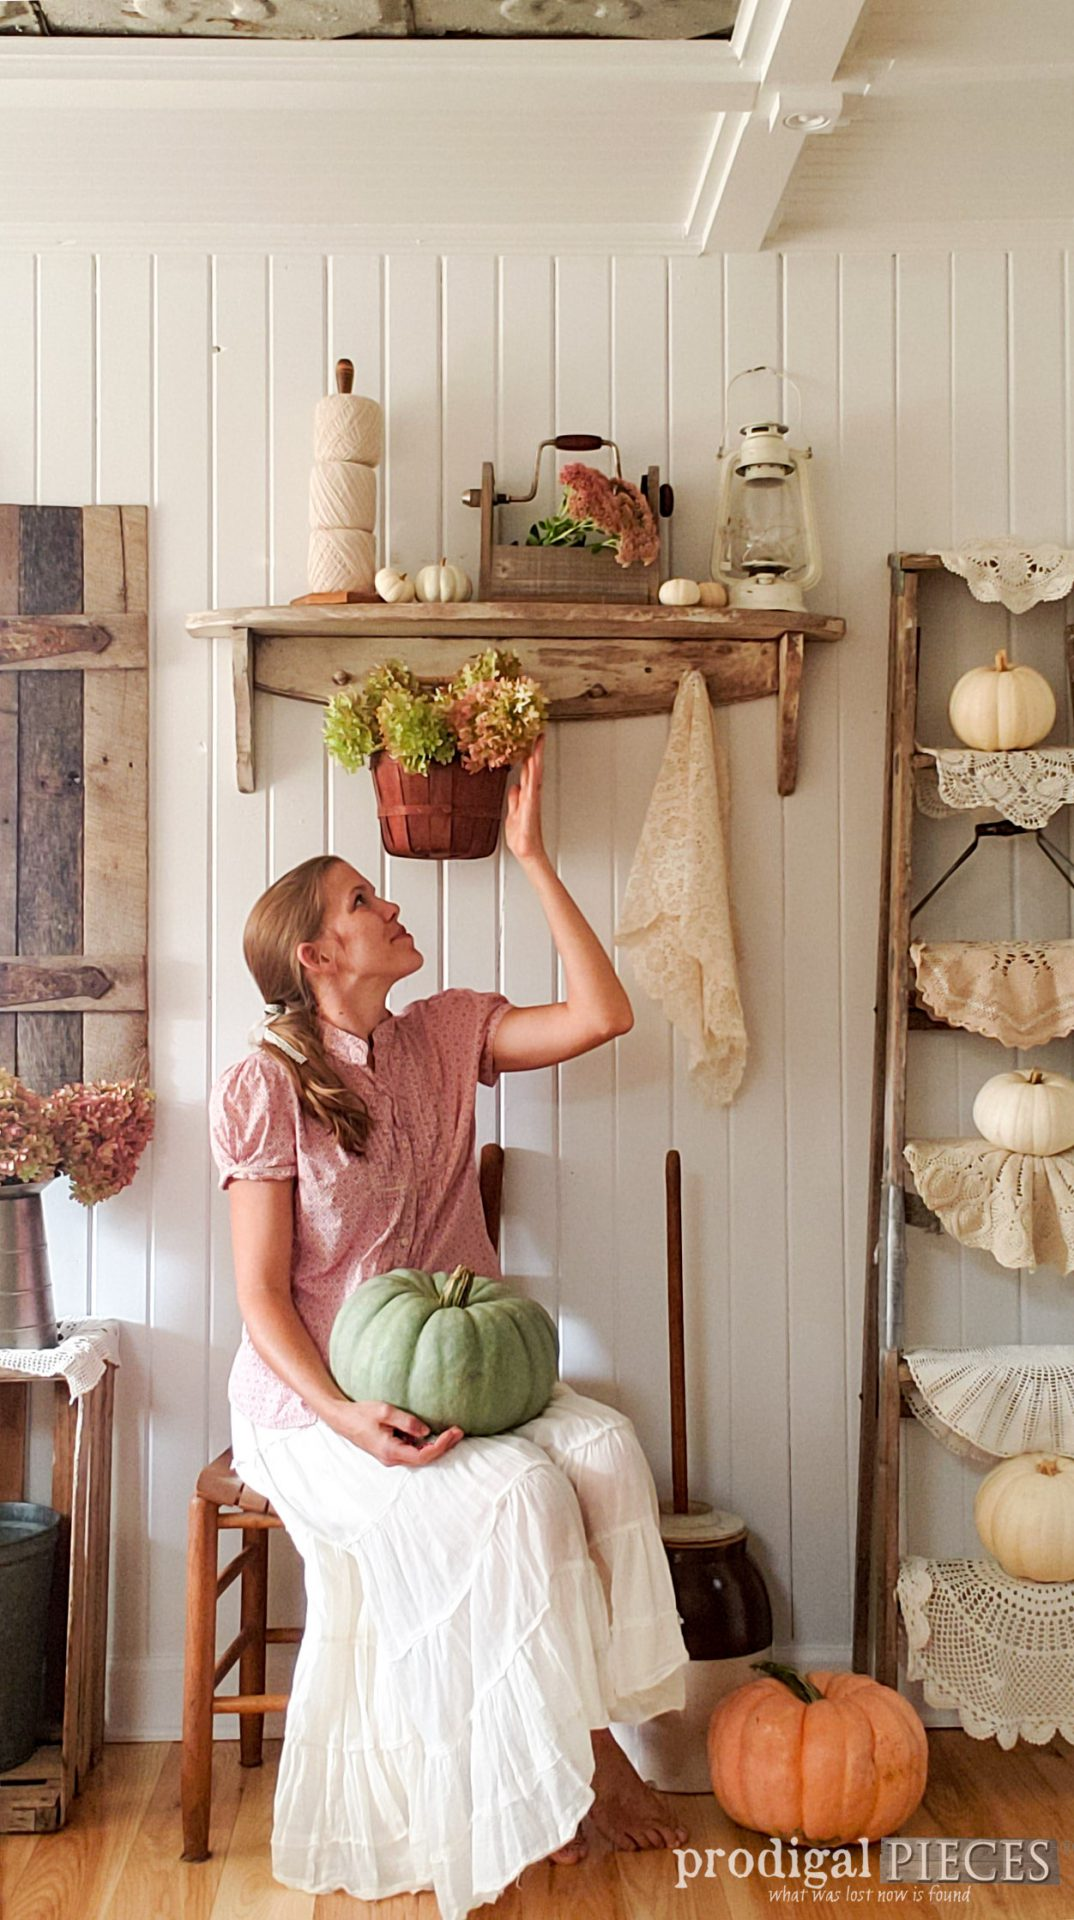 Larissa of Prodigal Pieces displays her DIY farmhouse fall vignette | video tutorial at prodigalpieces.com #prodigalpieces #diy #farmhouse #fall #home #homedecor #diy